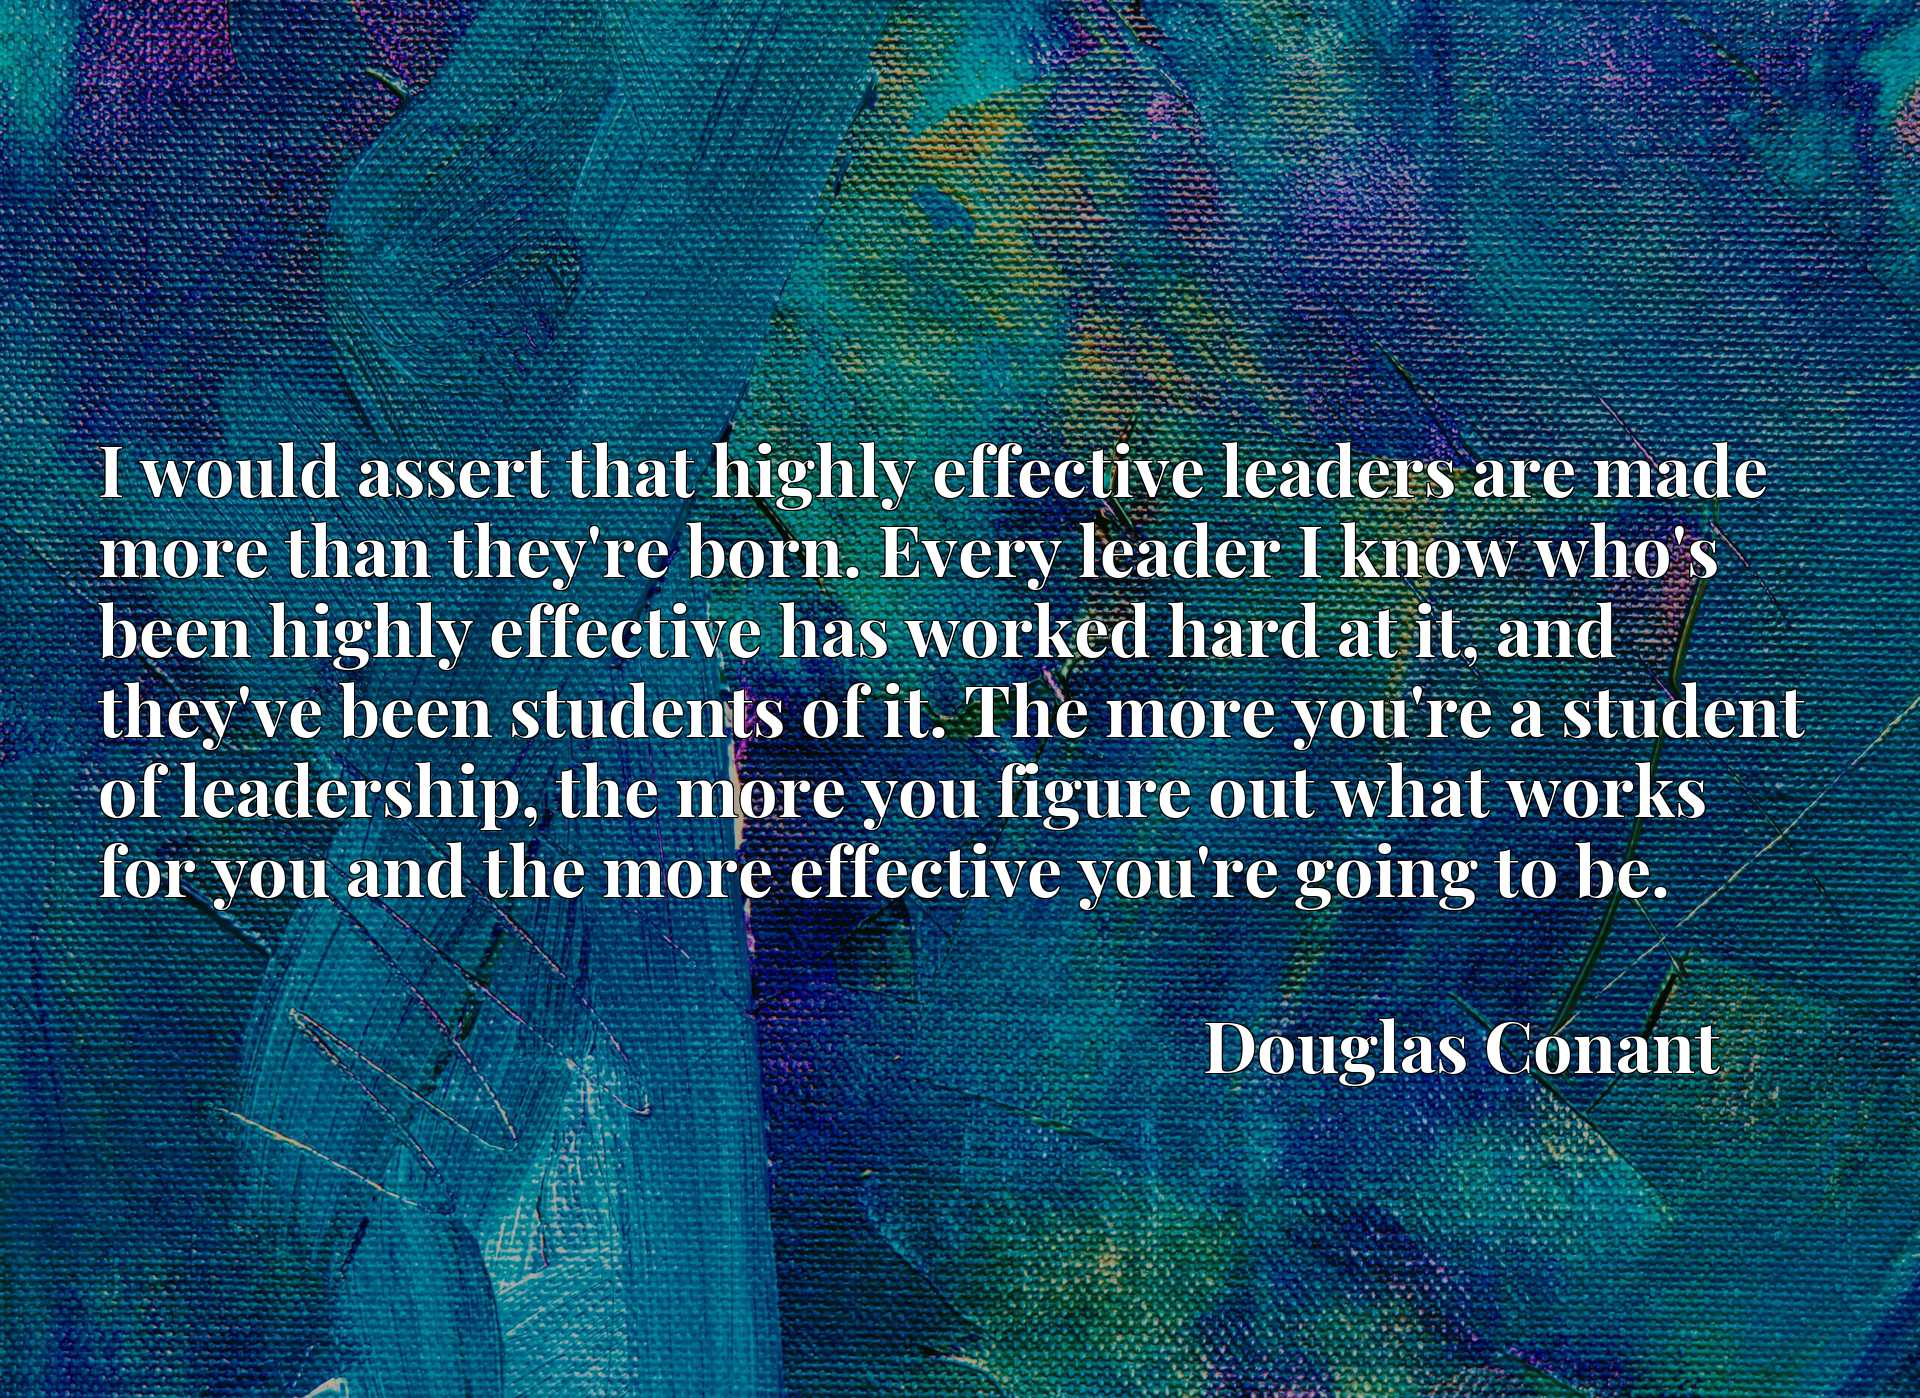 I would assert that highly effective leaders are made more than they're born. Every leader I know who's been highly effective has worked hard at it, and they've been students of it. The more you're a student of leadership, the more you figure out what works for you and the more effective you're going to be.